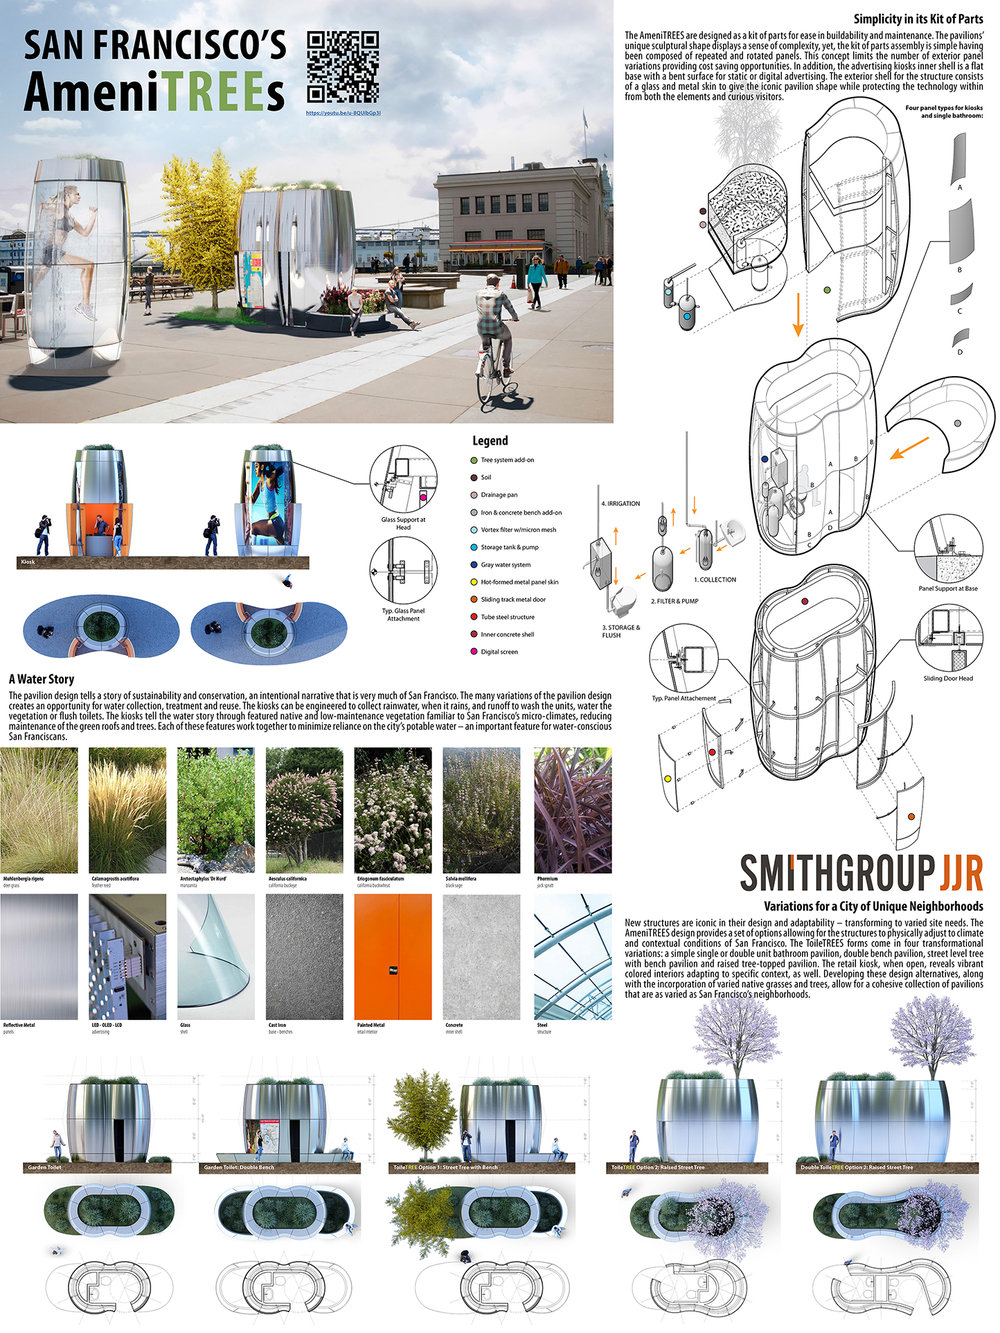 SmithGroupJJR_JCDecauxSFPublicWorks_competition_BOARD02_web2.jpg